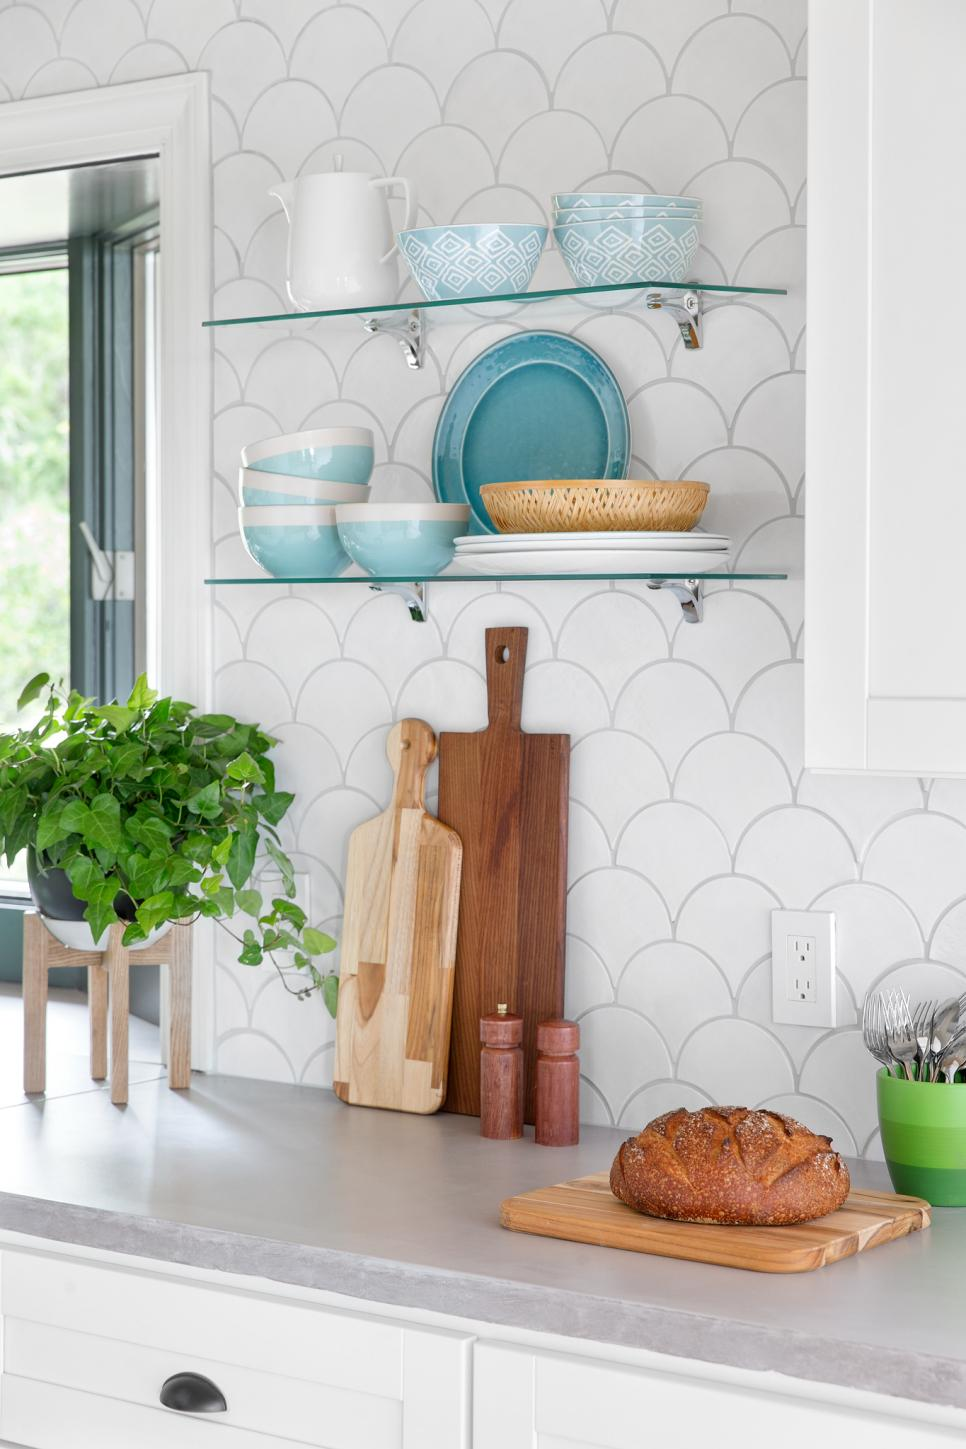 DIYBlogCabinKitchen092016 Inside the DIY Network's Blog Cabin Kitchen! All Kitchens Tile Inspiration   bc2016_kitchen-pantry_017_transition-to-pantry_h.jpg.rend_.hgtvcom.966.644 Inside the DIY Network's Blog Cabin Kitchen! All Kitchens Tile Inspiration   bc2016_kitchen-pantry_015_cabinet-mid-range_v.jpg.rend_.hgtvcom.966.1449 Inside the DIY Network's Blog Cabin Kitchen! All Kitchens Tile Inspiration   bc2016_kitchen-pantry_013_mid-range_v.jpg.rend_.hgtvcom.966.1449 Inside the DIY Network's Blog Cabin Kitchen! All Kitchens Tile Inspiration   bc2016_kitchen-pantry_010_mid-range_v.jpg.rend_.hgtvcom.966.1449 Inside the DIY Network's Blog Cabin Kitchen! All Kitchens Tile Inspiration   bc2016_kitchen-pantry_09_tile-detail_h.jpg.rend_.hgtvcom.966.644 Inside the DIY Network's Blog Cabin Kitchen! All Kitchens Tile Inspiration   bc2016_kitchen-pantry_08_shelving-detail_v.jpg.rend_.hgtvcom.966.1449 Inside the DIY Network's Blog Cabin Kitchen! All Kitchens Tile Inspiration